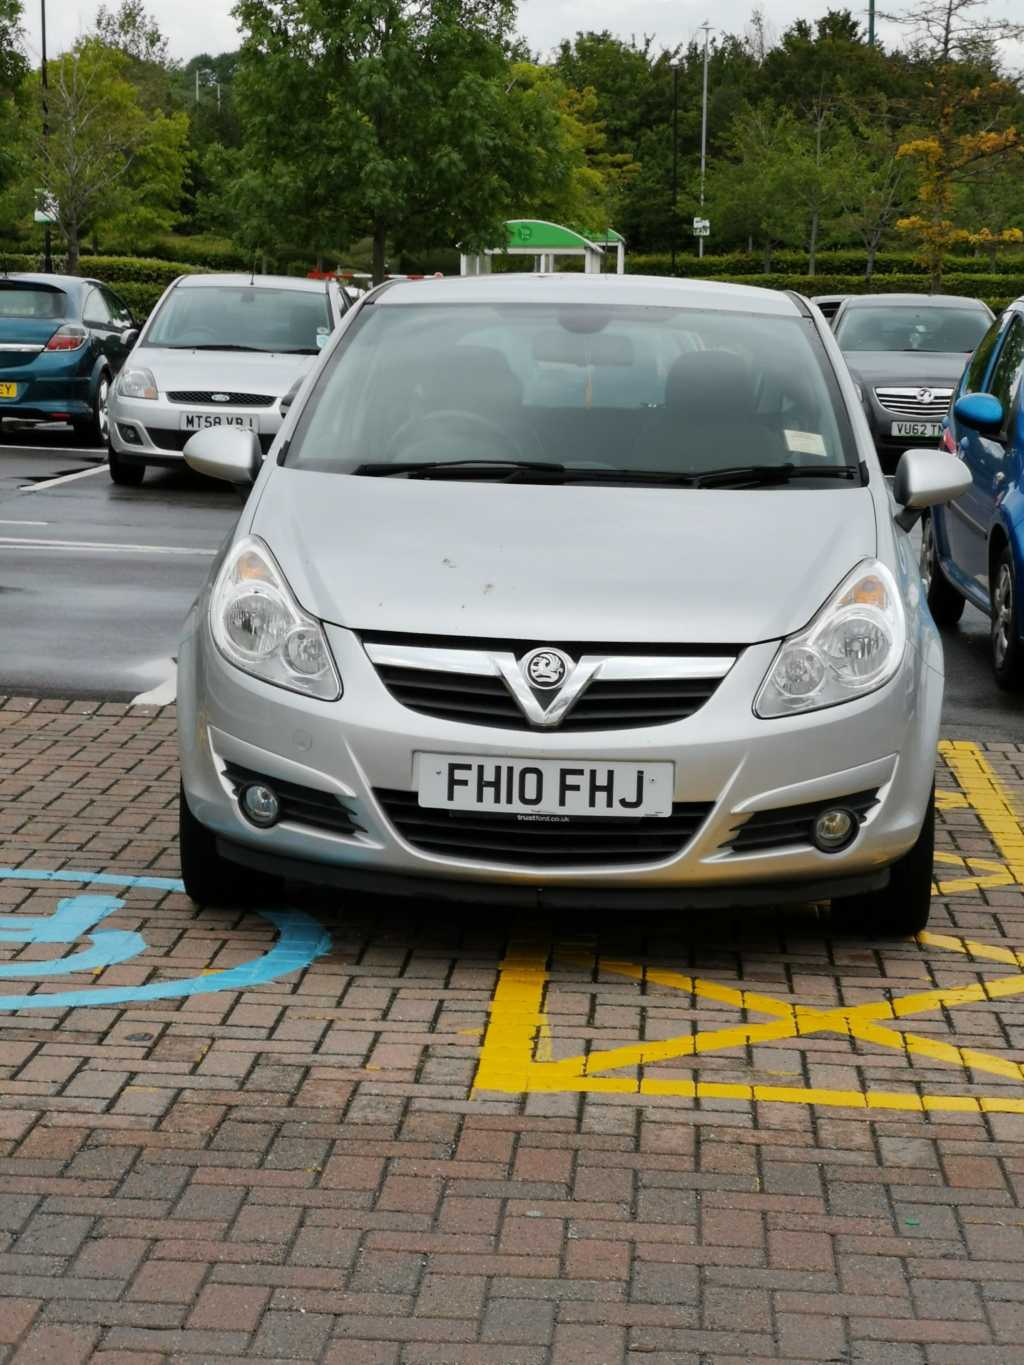 FH10 FHJ displaying Inconsiderate Parking